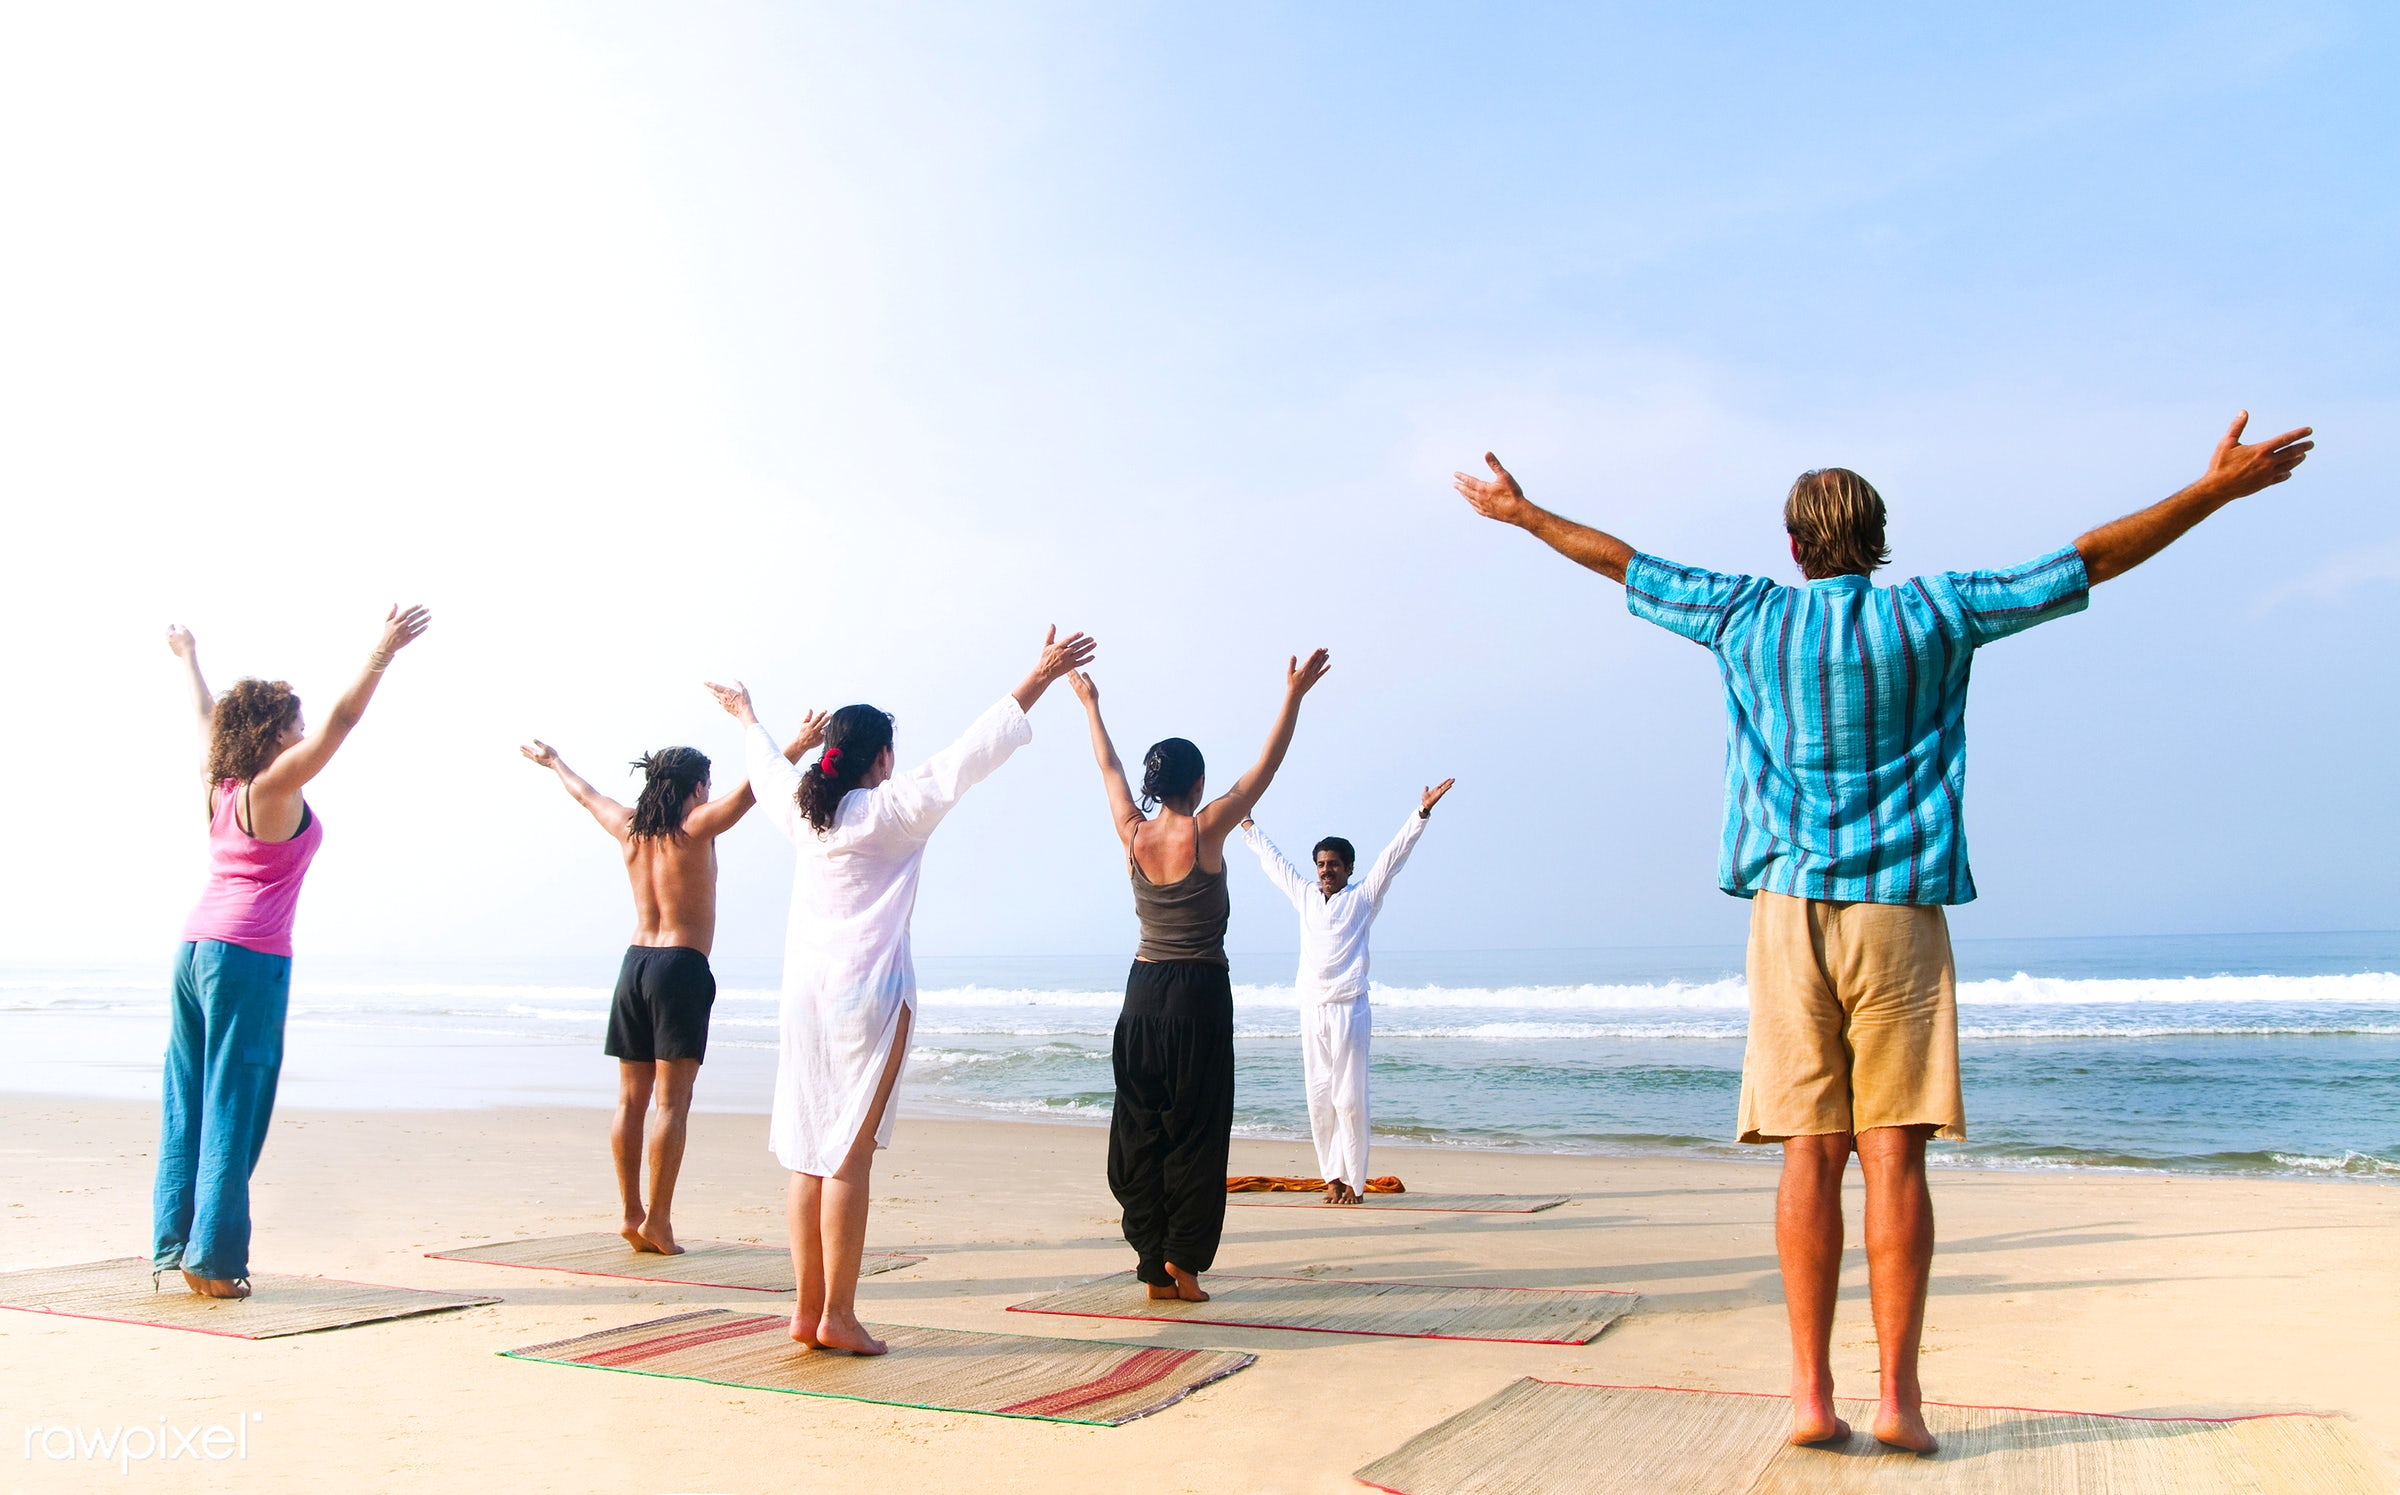 Yoga class on the beach - yoga, indian, beauty in nature, activity, adult, arms raised, beach, body, body care, casual,...